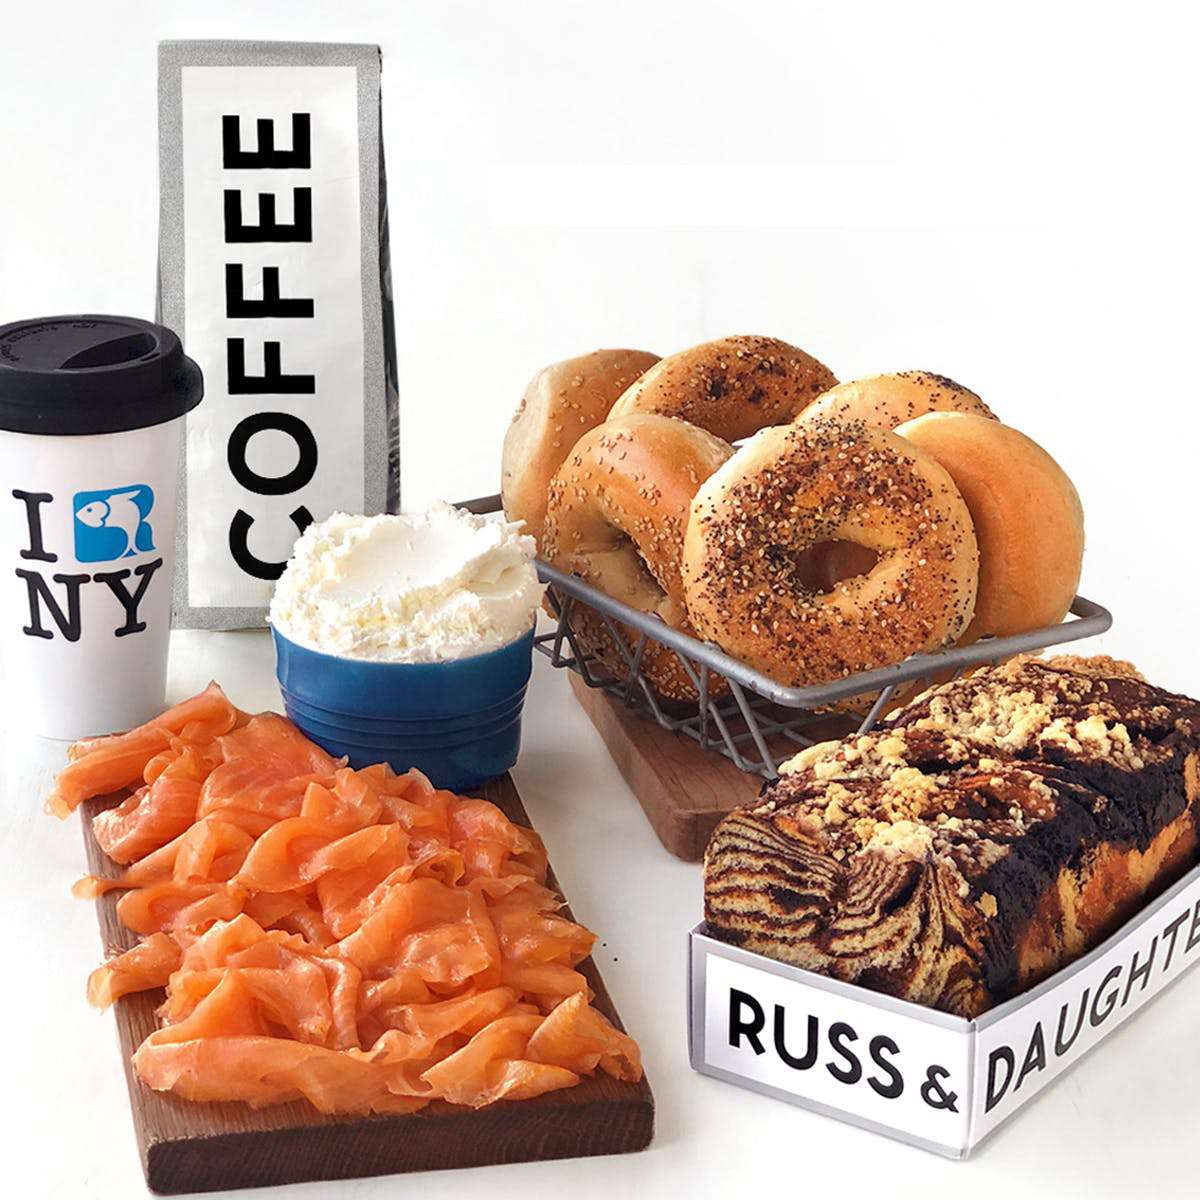 russ-and-daughters-new-york-brunch